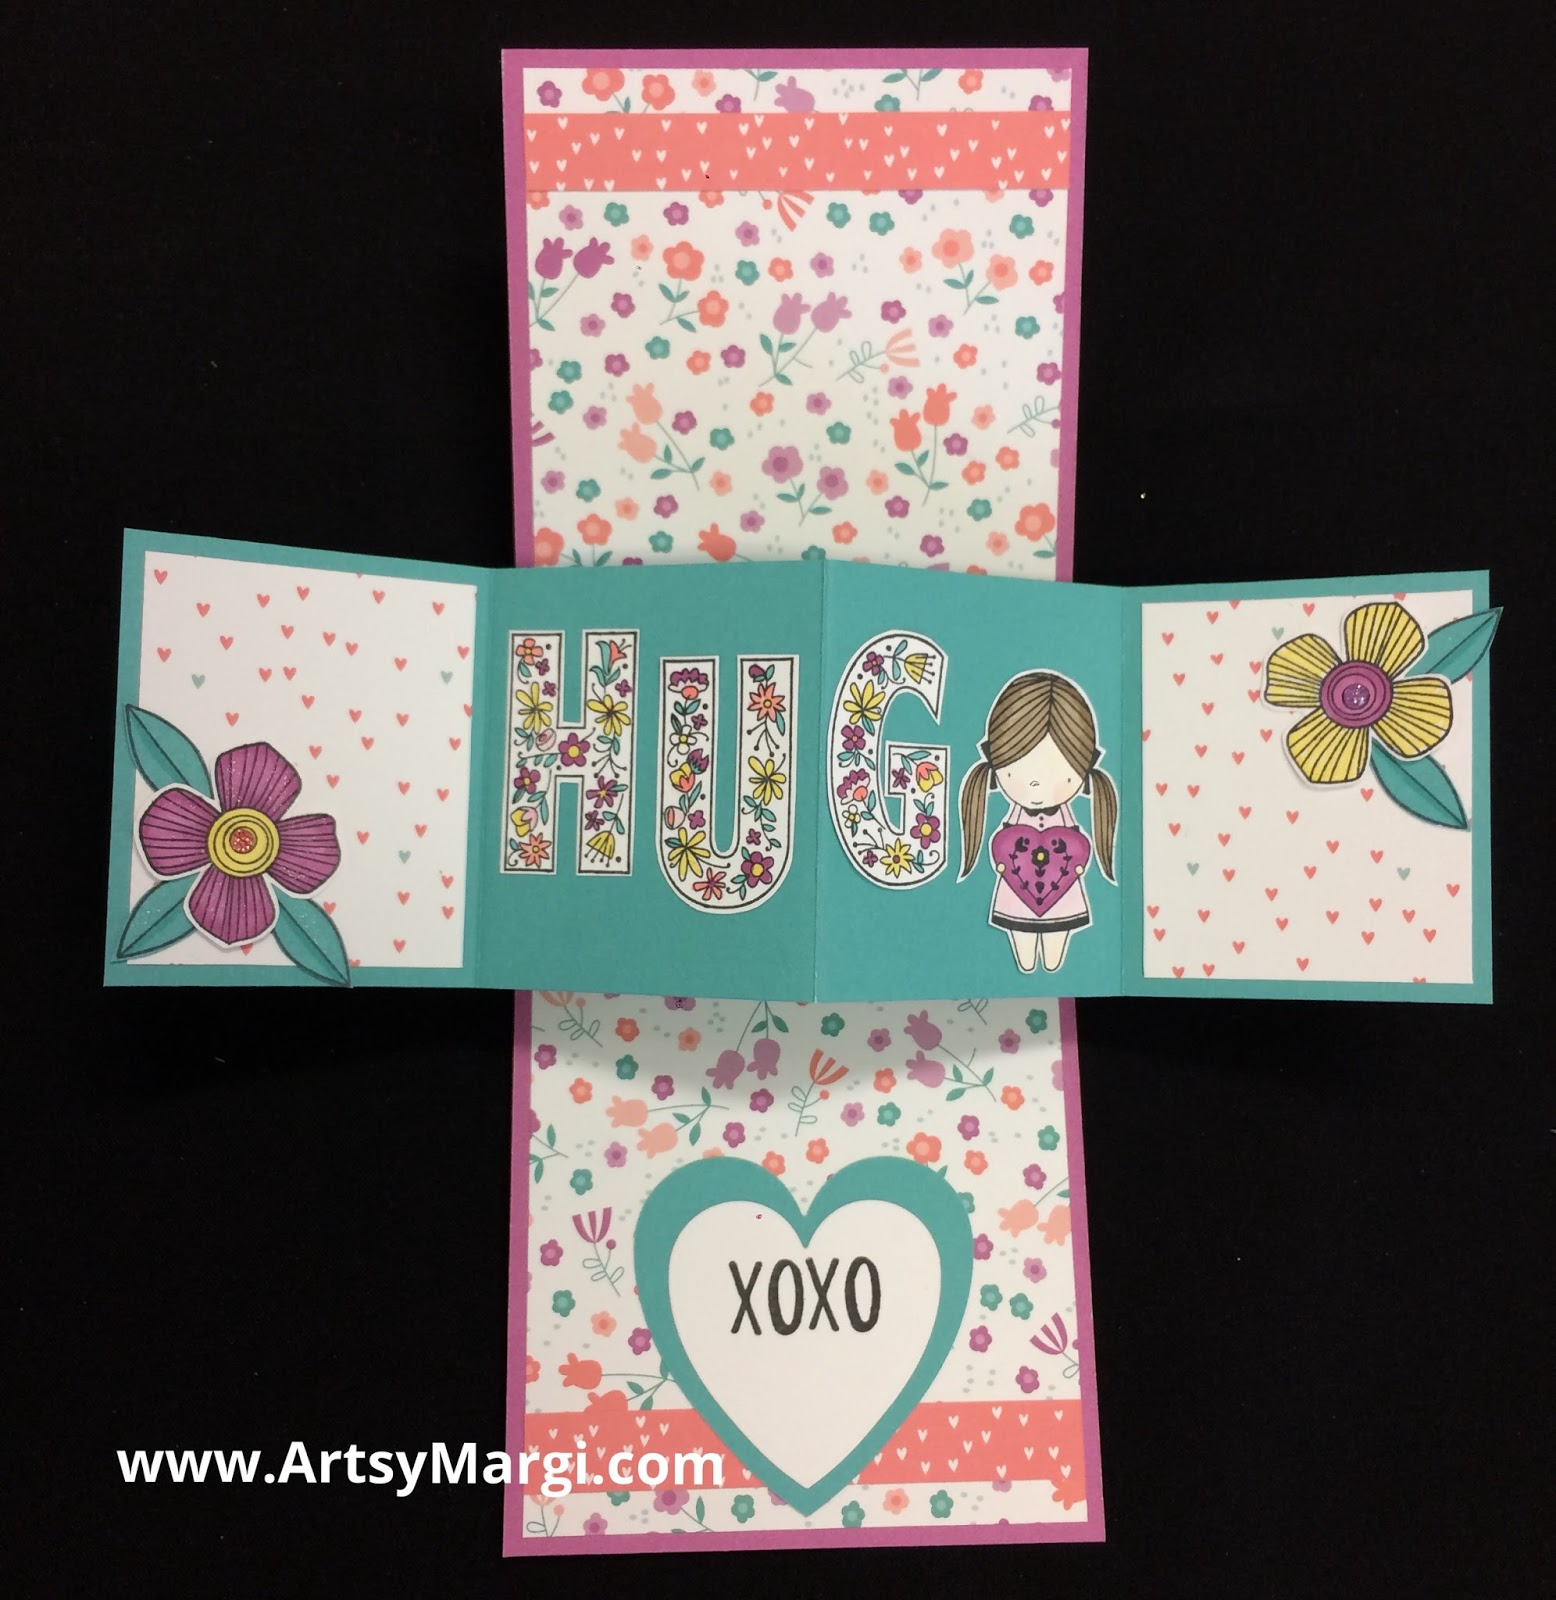 Flesh colored cardstock - I Used The Bright And Cheerful Colored Papers From Little Dreamer Plus A Sheet Of Thistle And Lagoon Cardstock